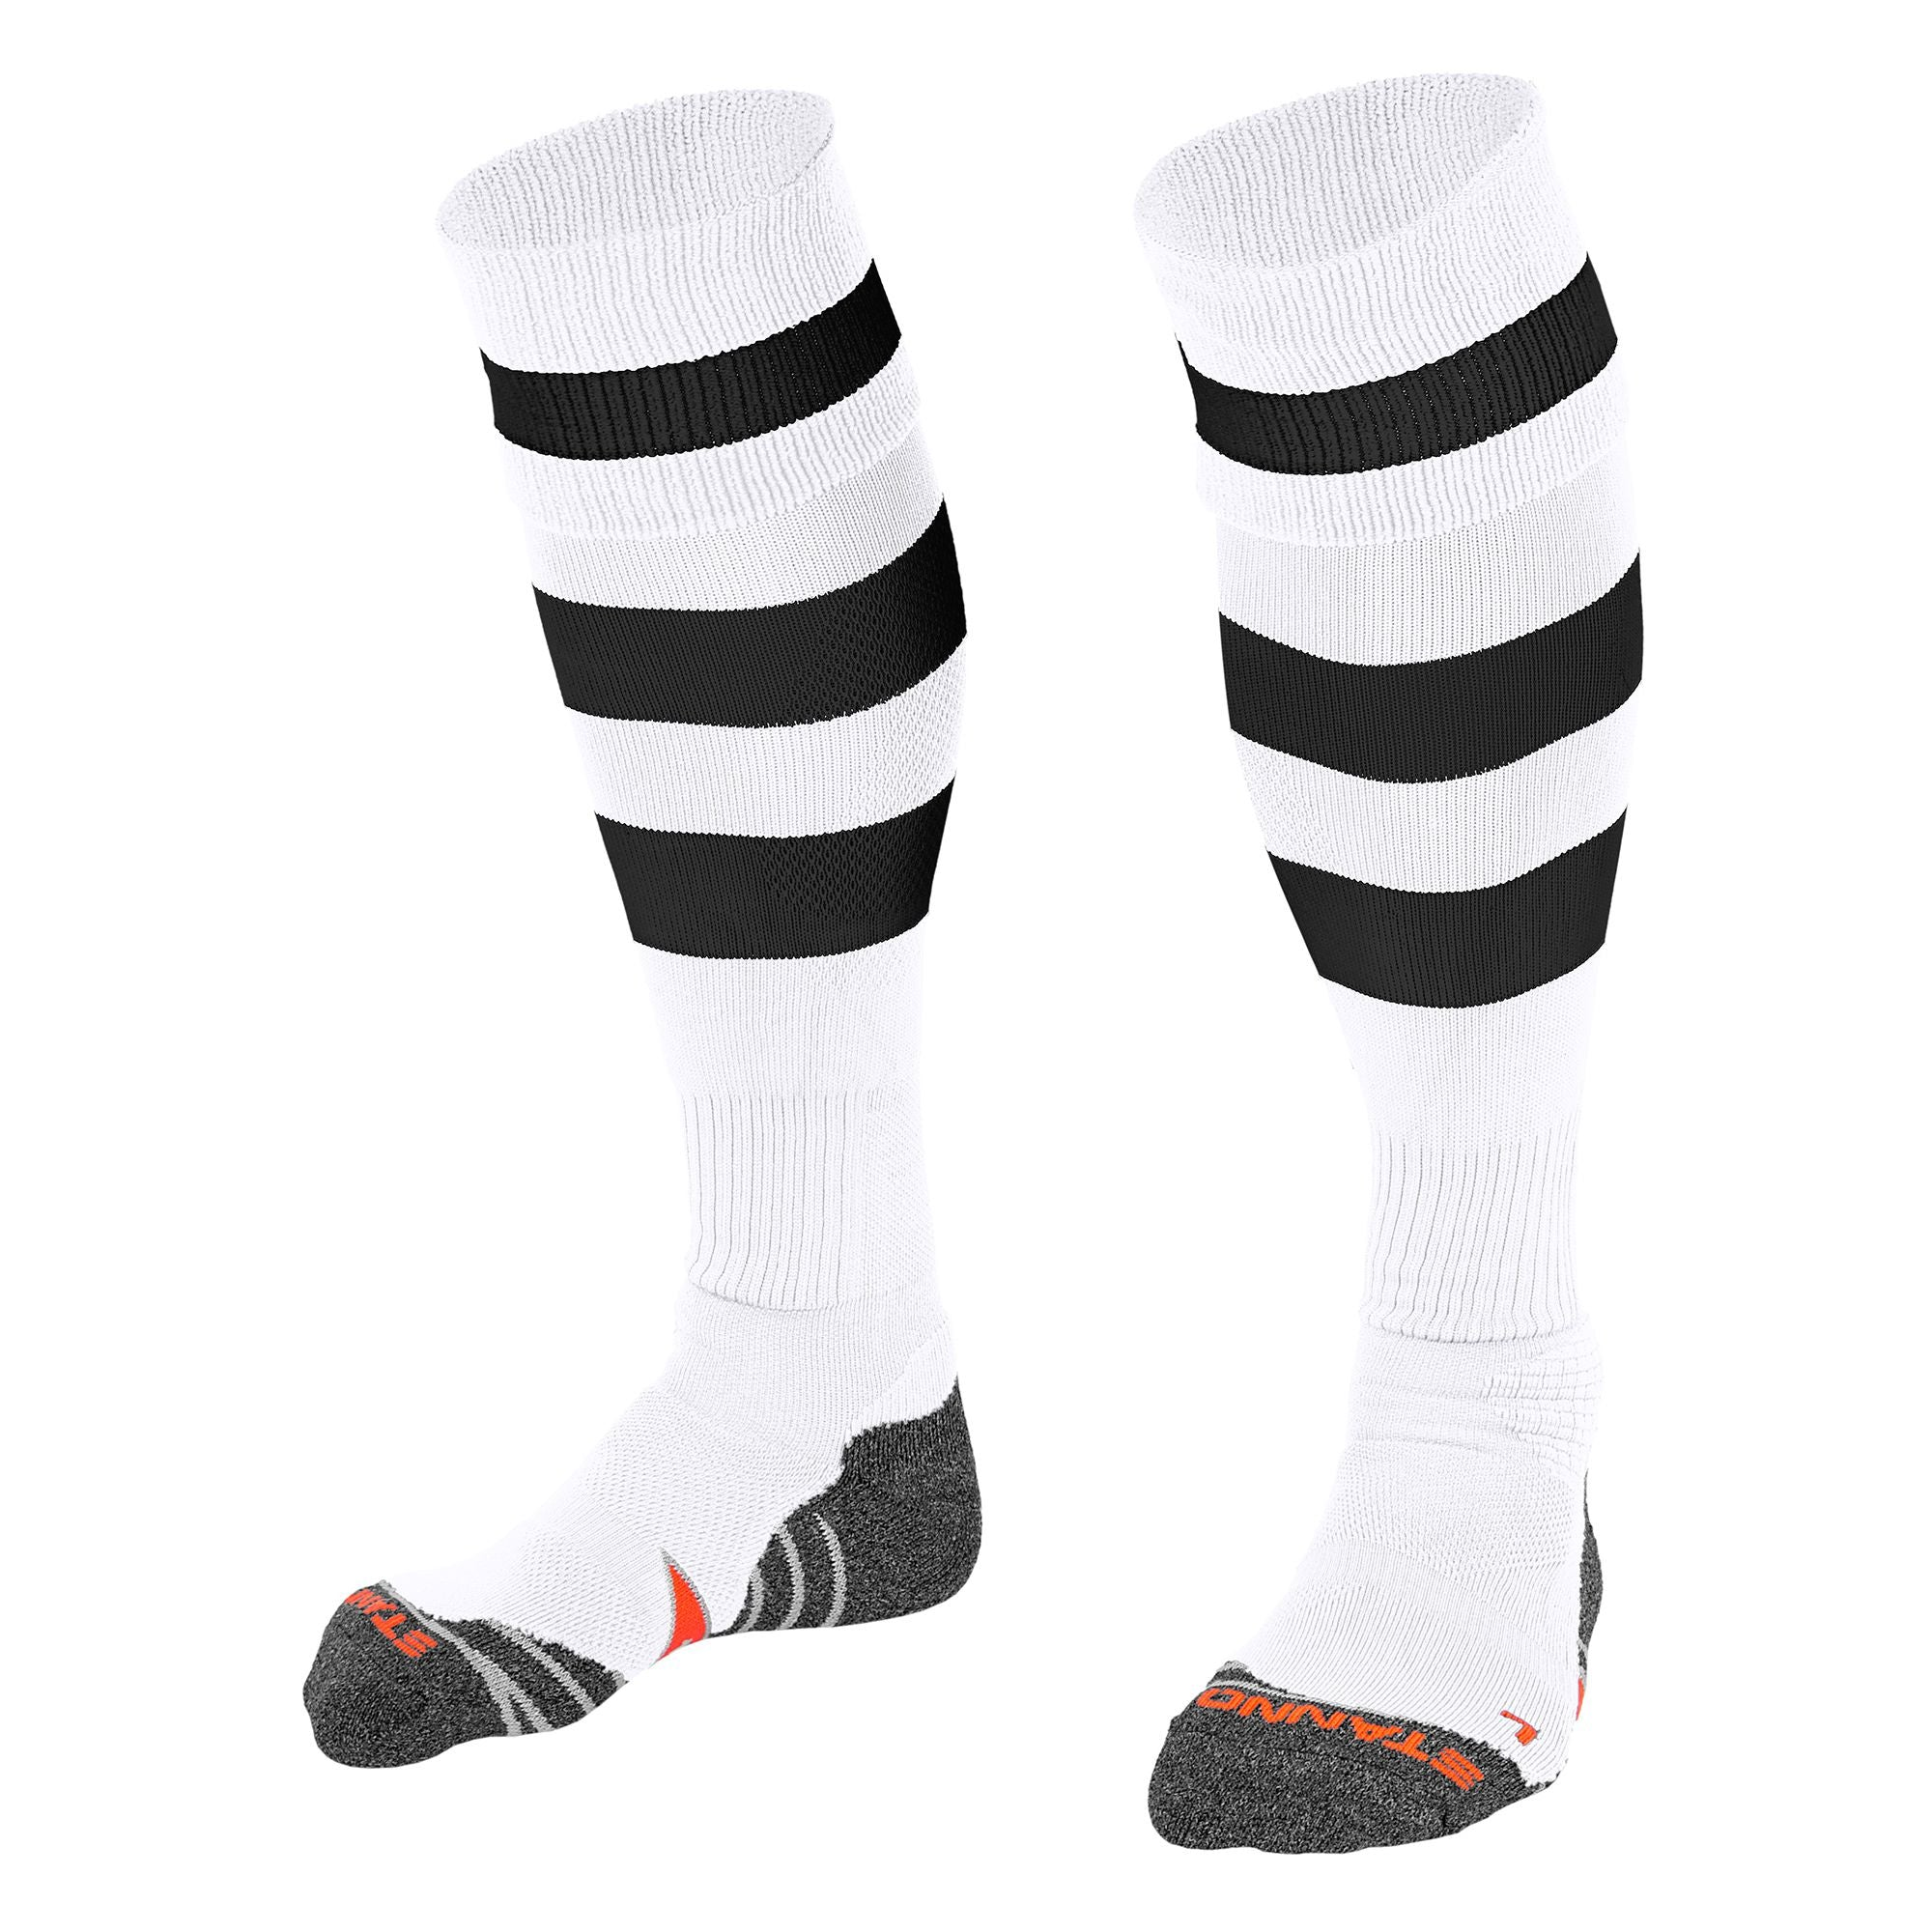 Stanno Original sock in white with 2 thick horizontal black stripes through the centre of the sock and one on the turnover. d